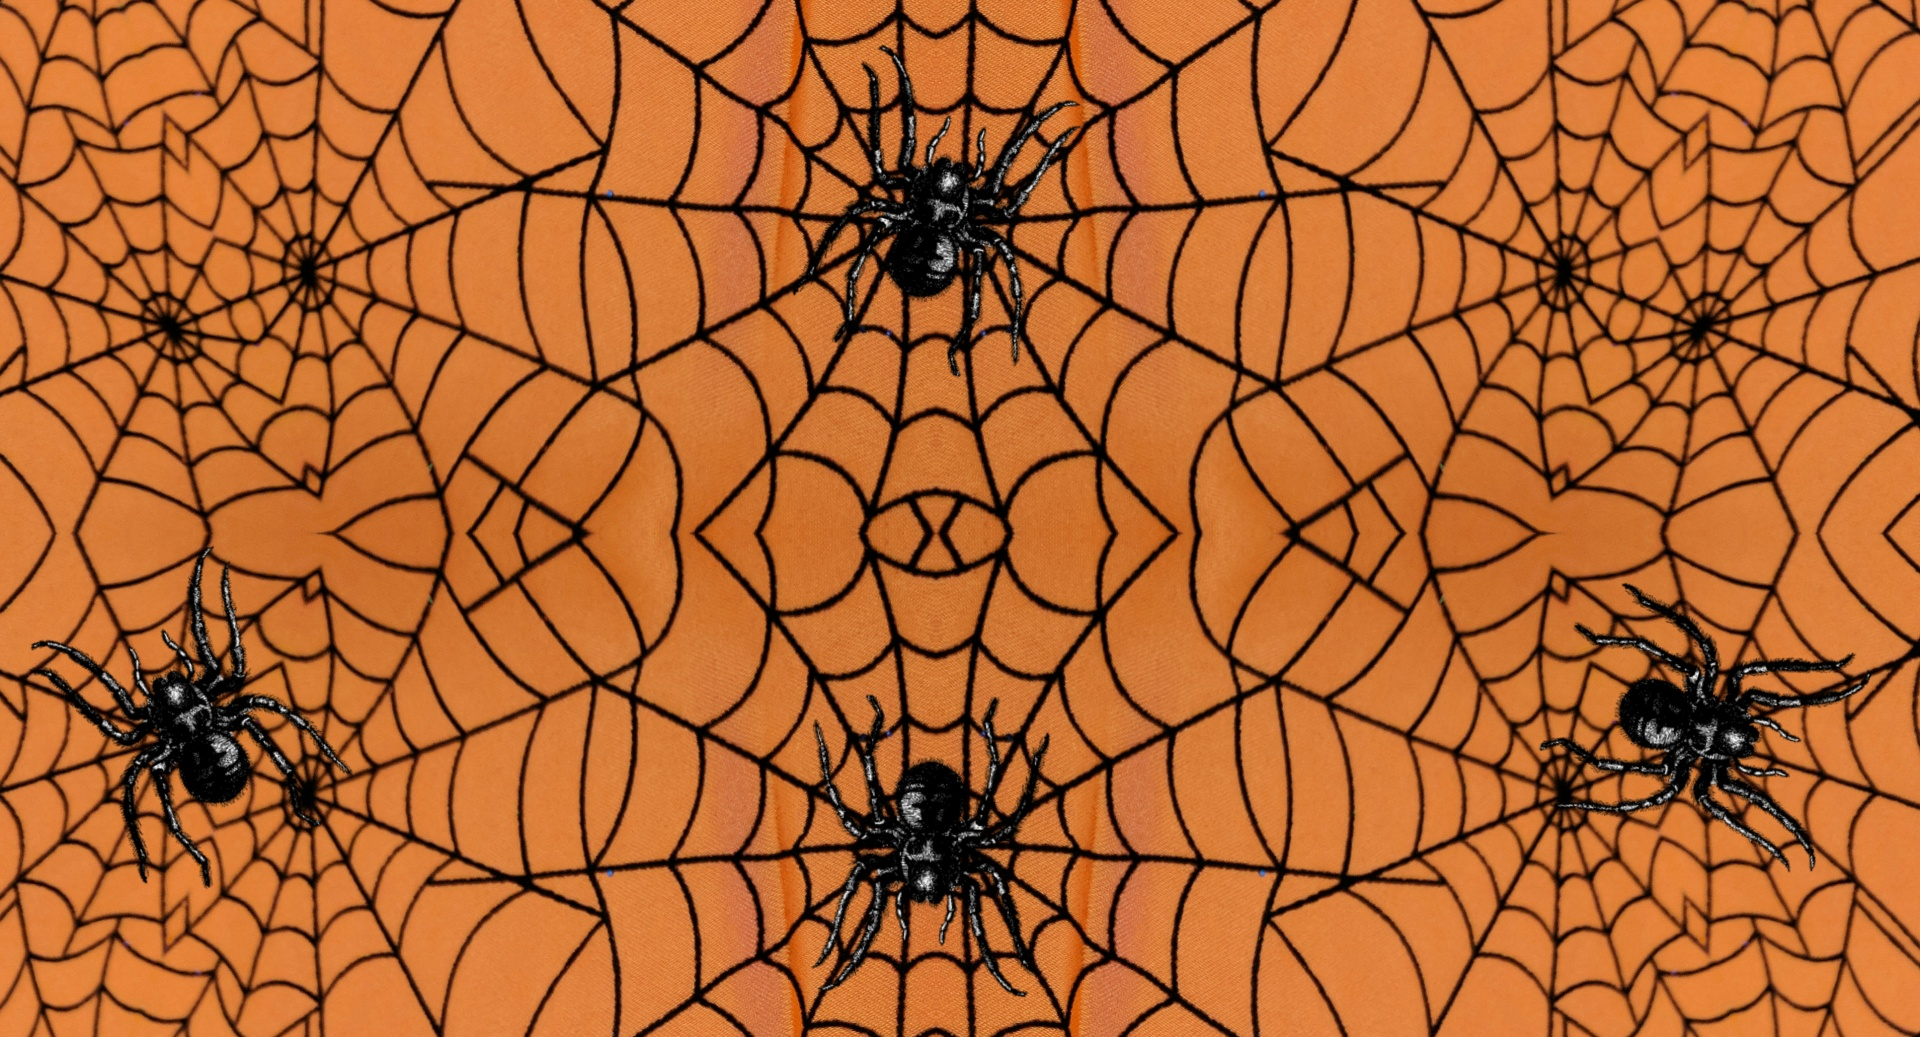 Spider Web Background Free Stock Photo - Public Domain Pictures